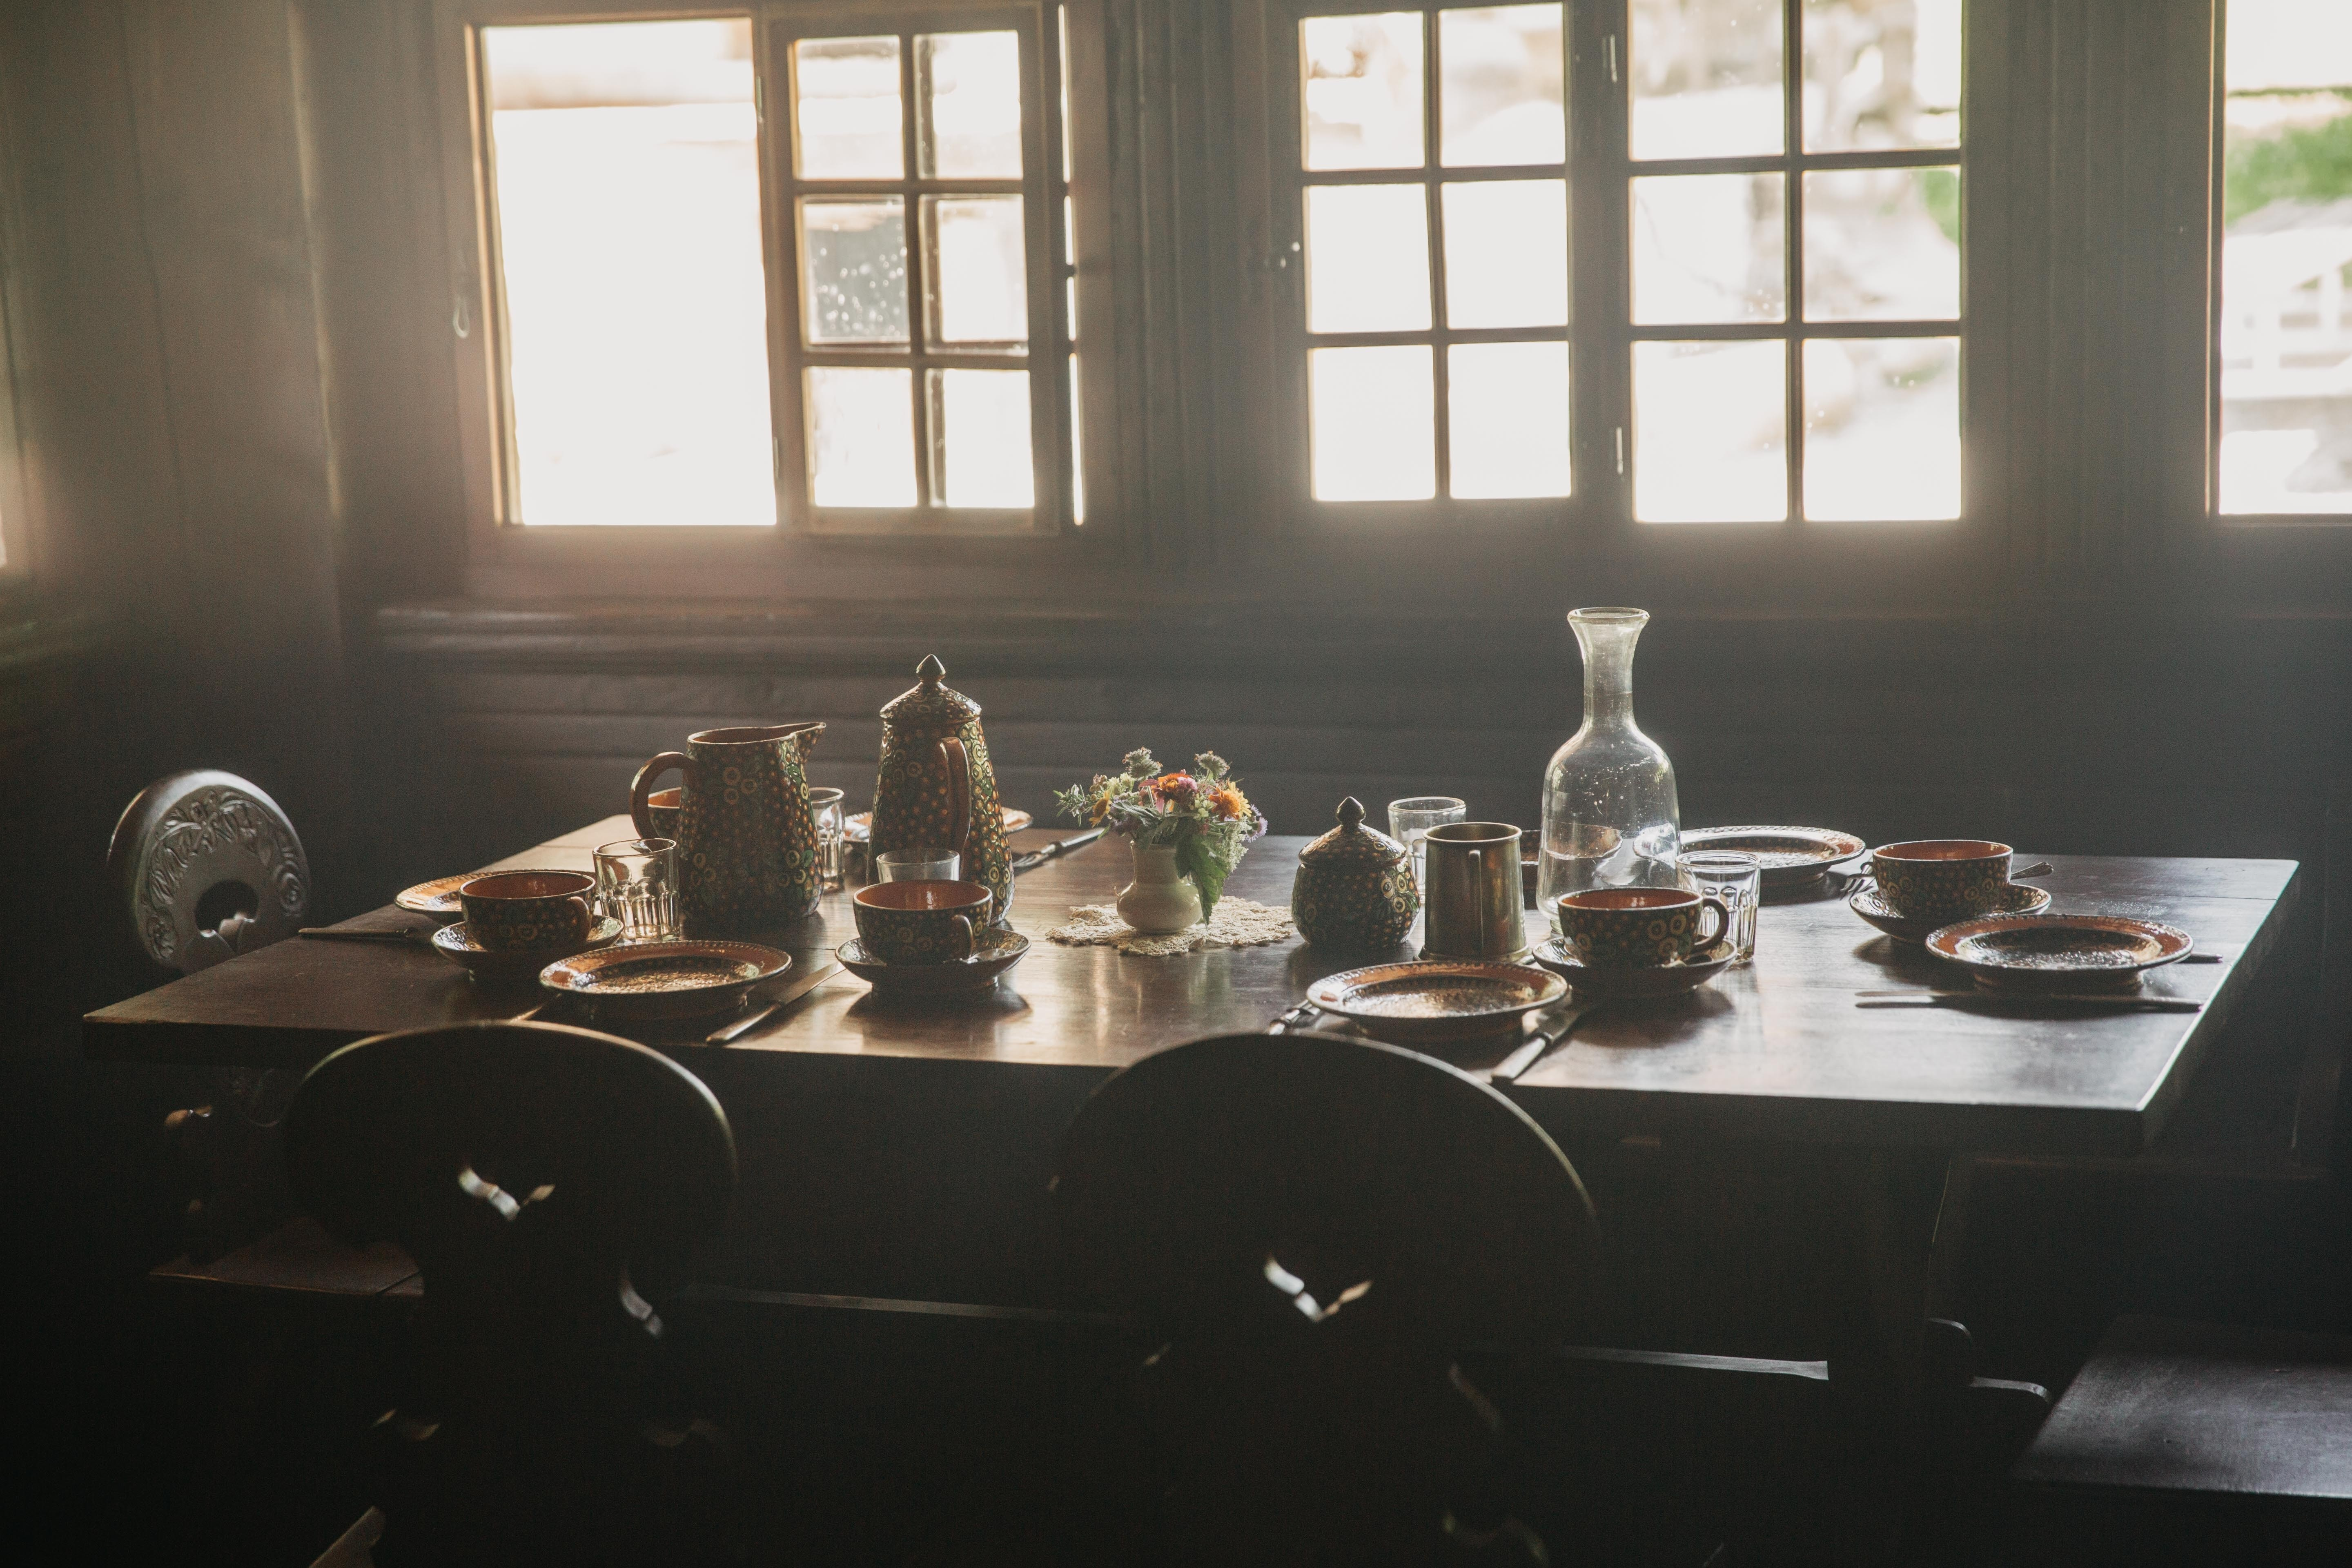 person taking photo of dining table with tablewares